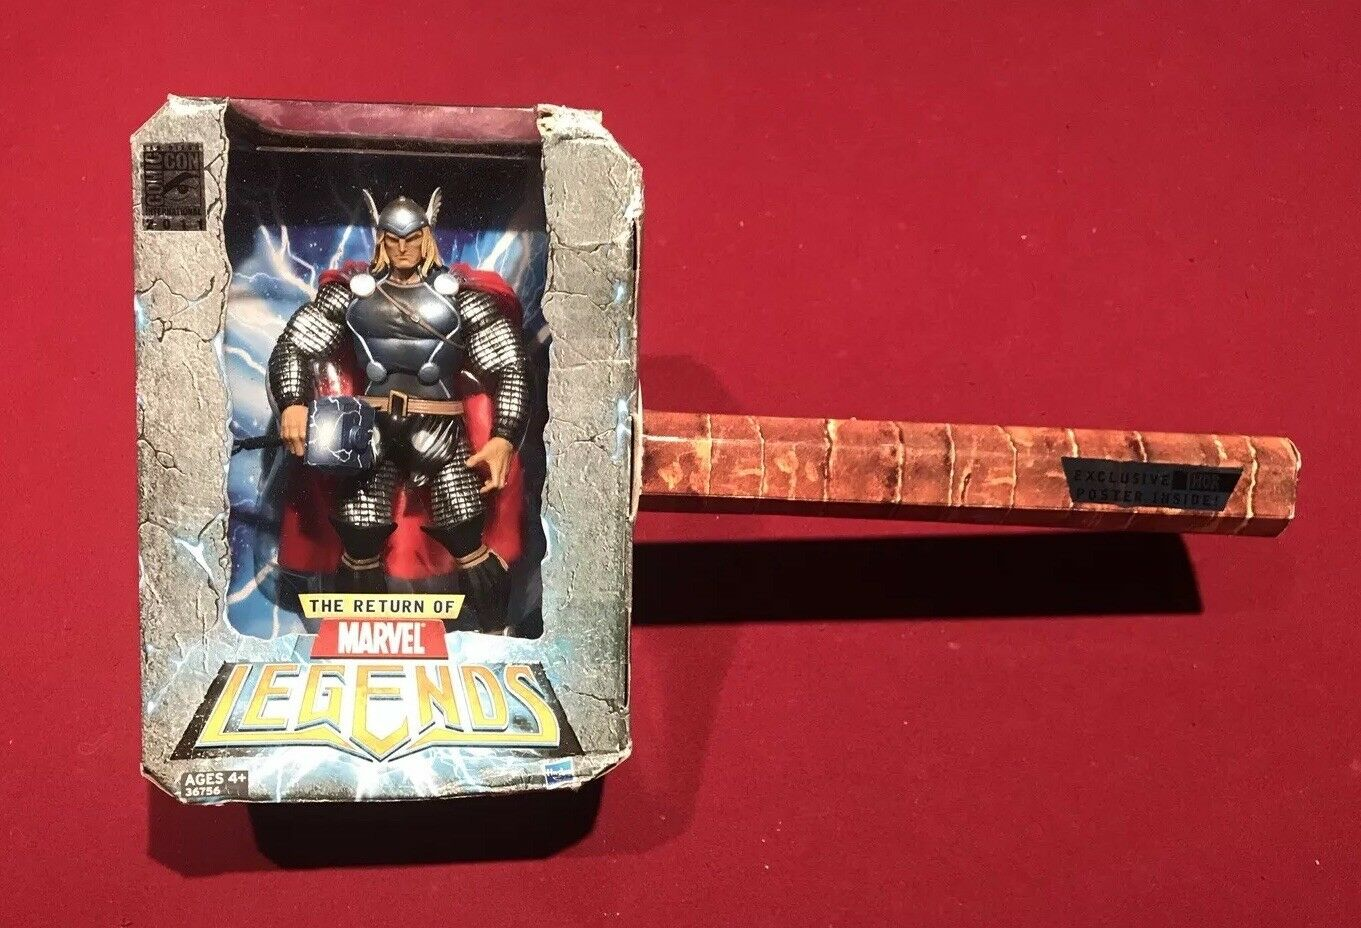 Marvel Legends SDCC EXCLUSIVE  THOR Hammer Mjolnir with Poster Comic Con Exc